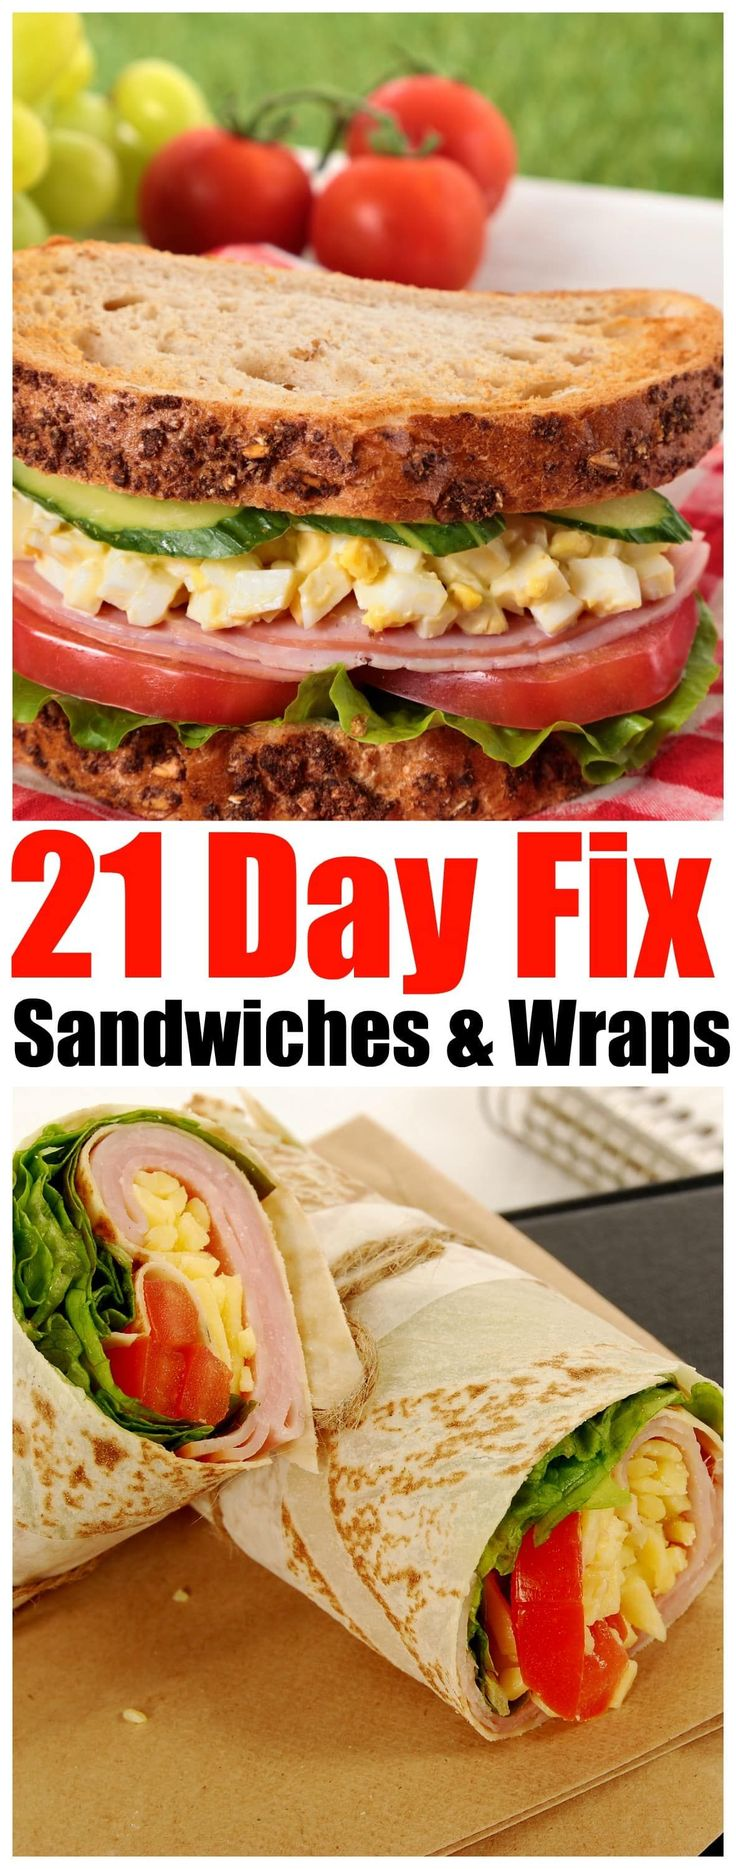 21 Day Fix sandwiches and wraps - Forget Takeout! Eat Easy and Delicious 21-Day Fix Sandwiches that you can make Every Day - dont be tempted to fall off the 21-Day Fix Challenge